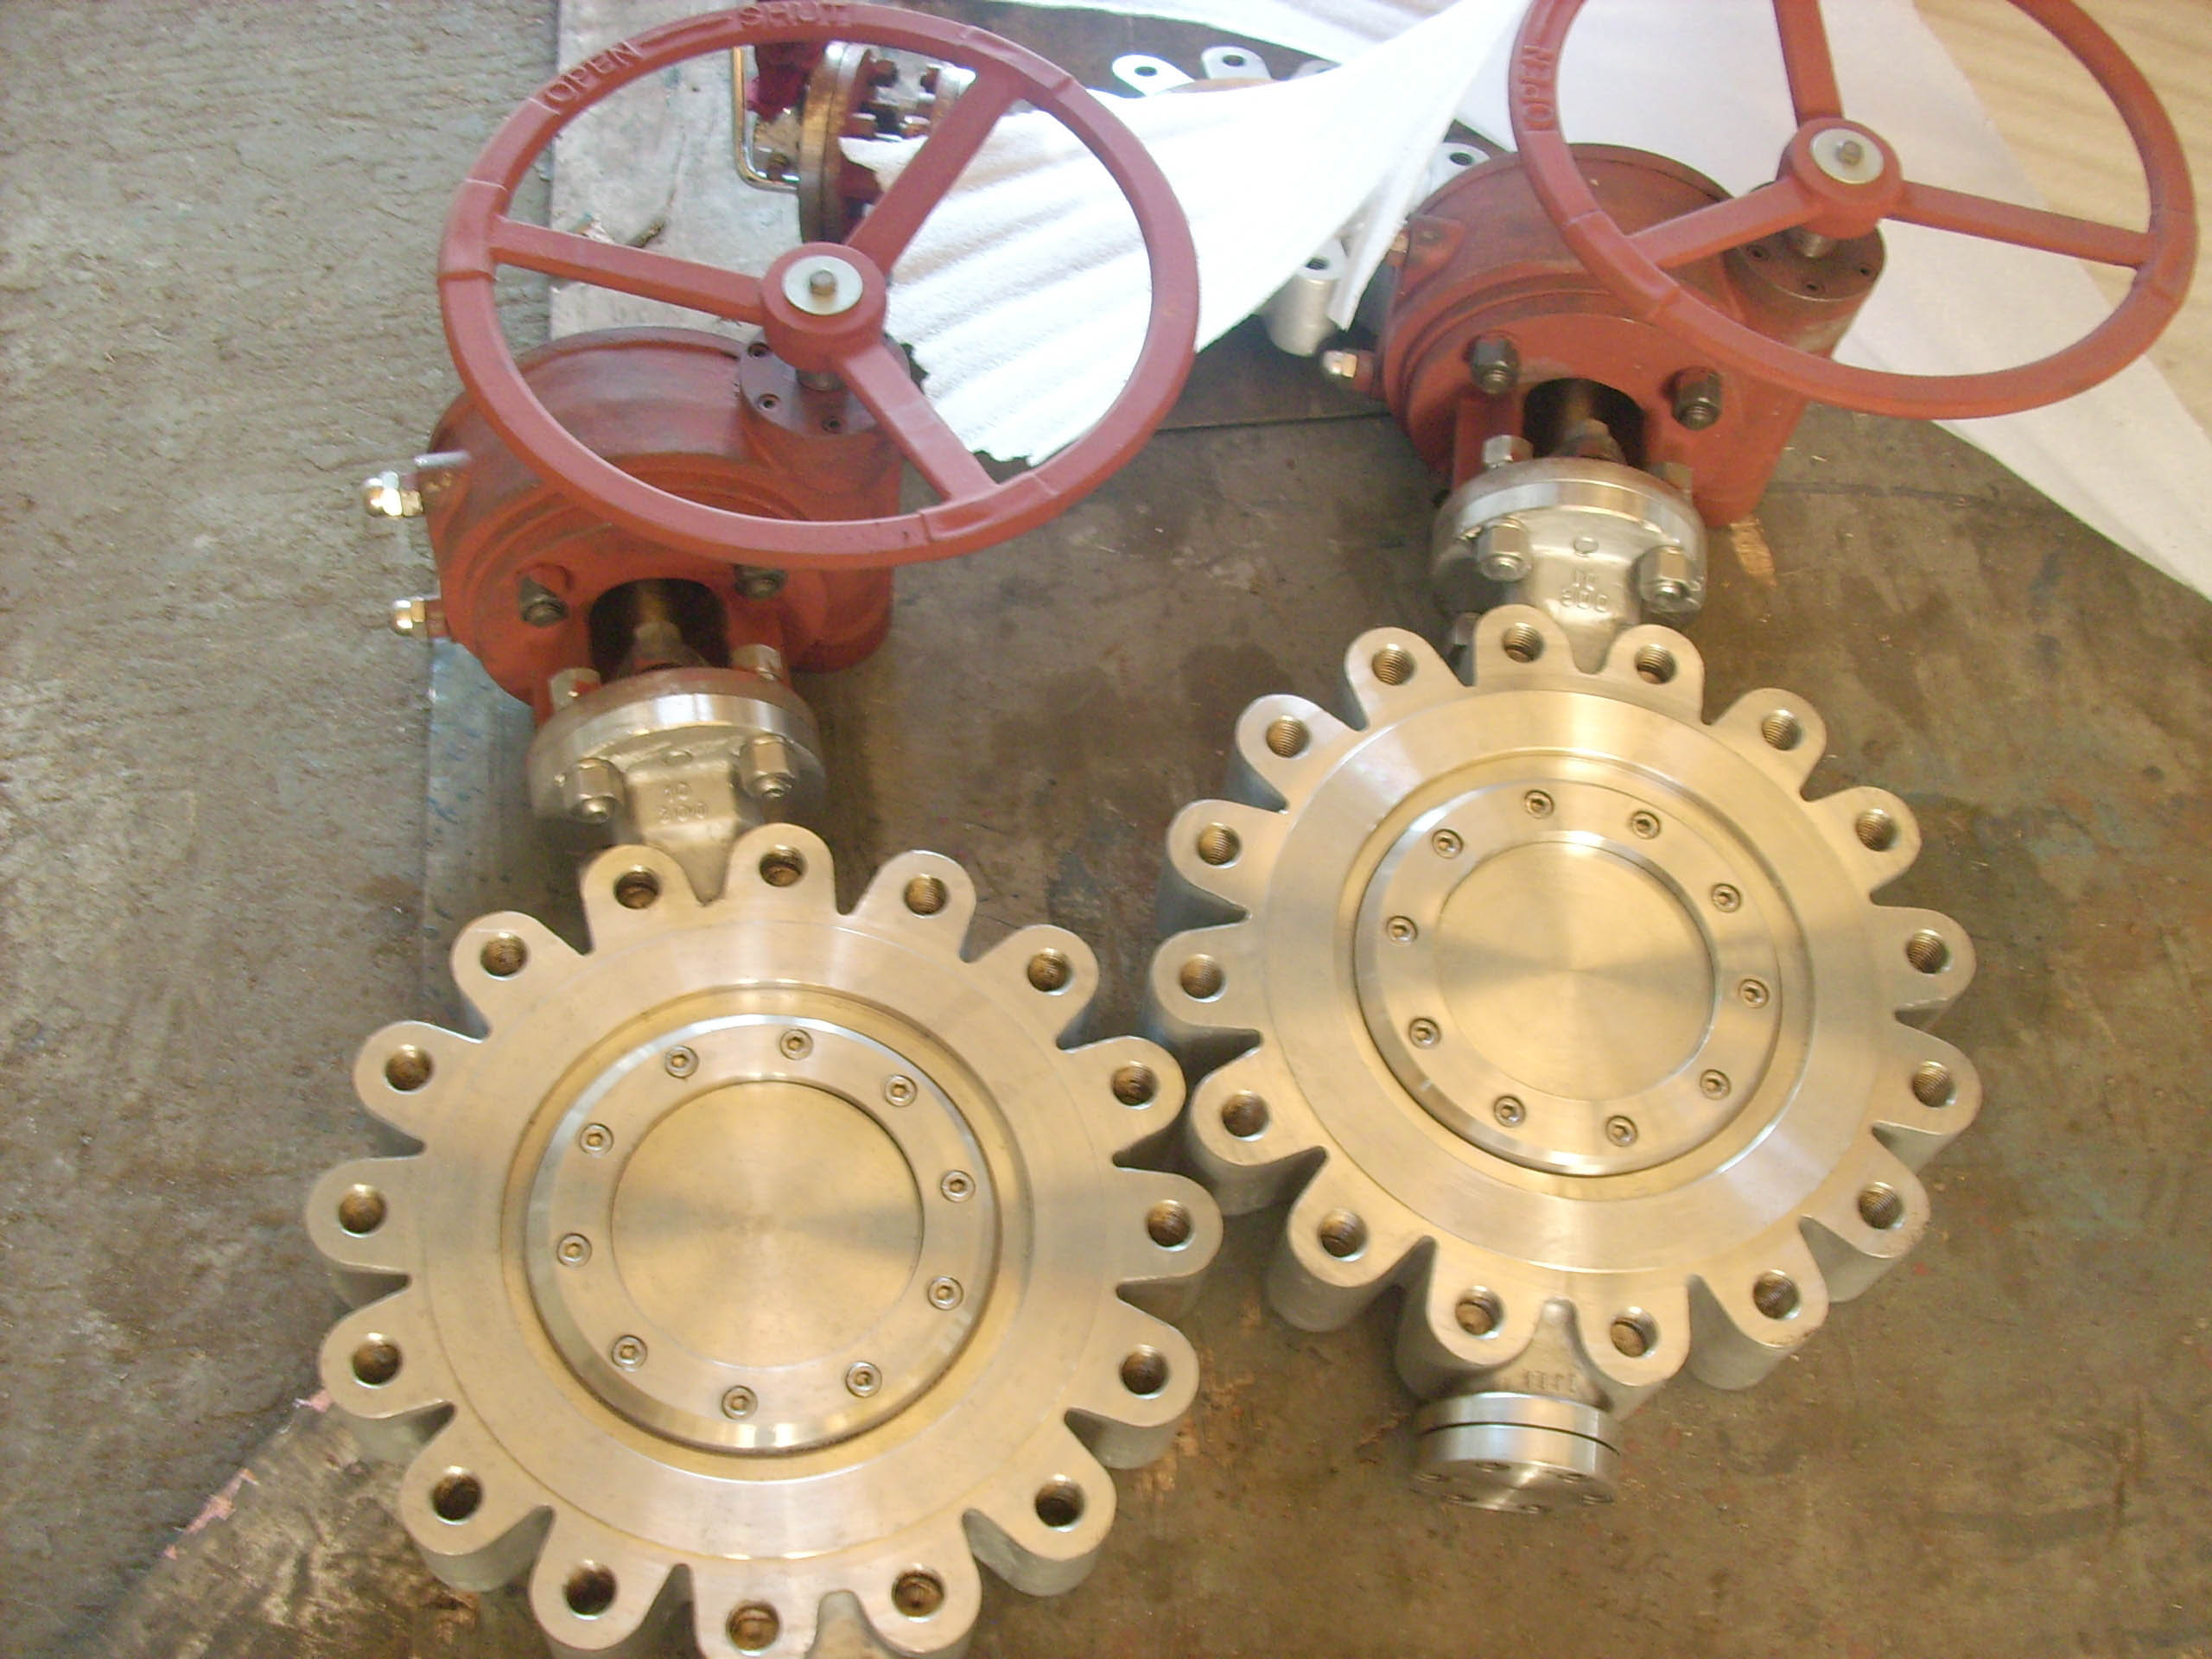 Radiator Butterfly valve for power transformer